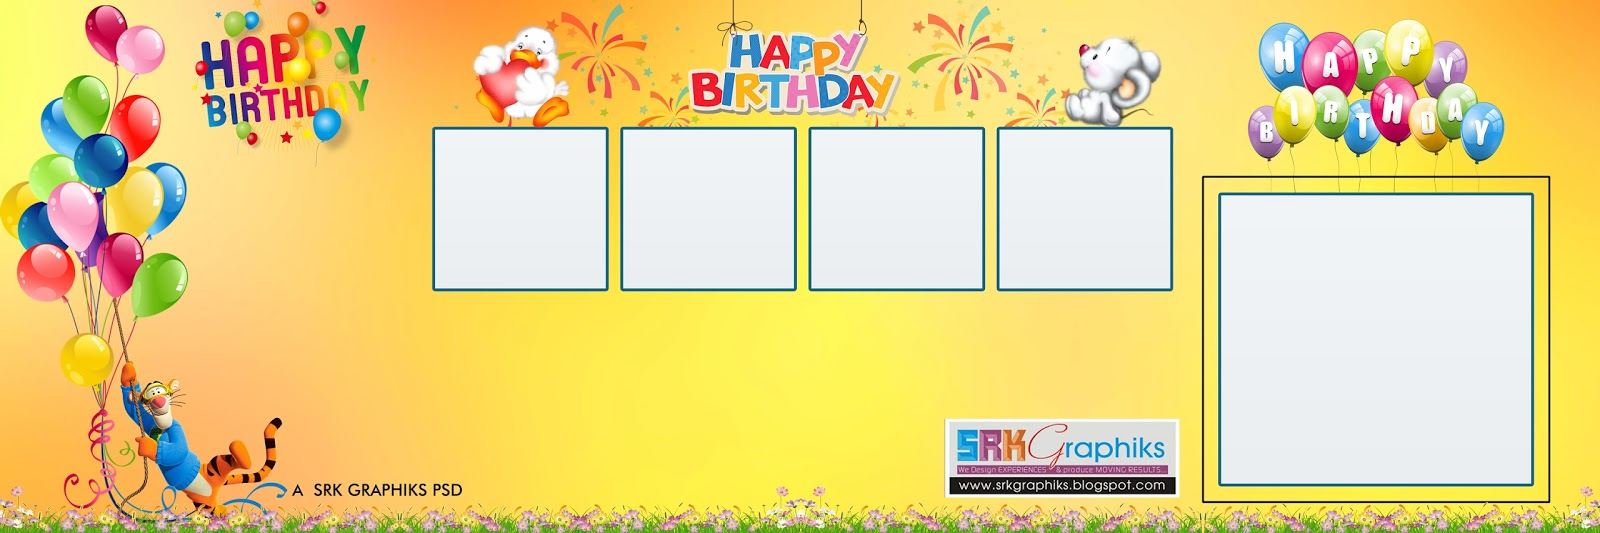 birthday background images for photoshop free download ; 30